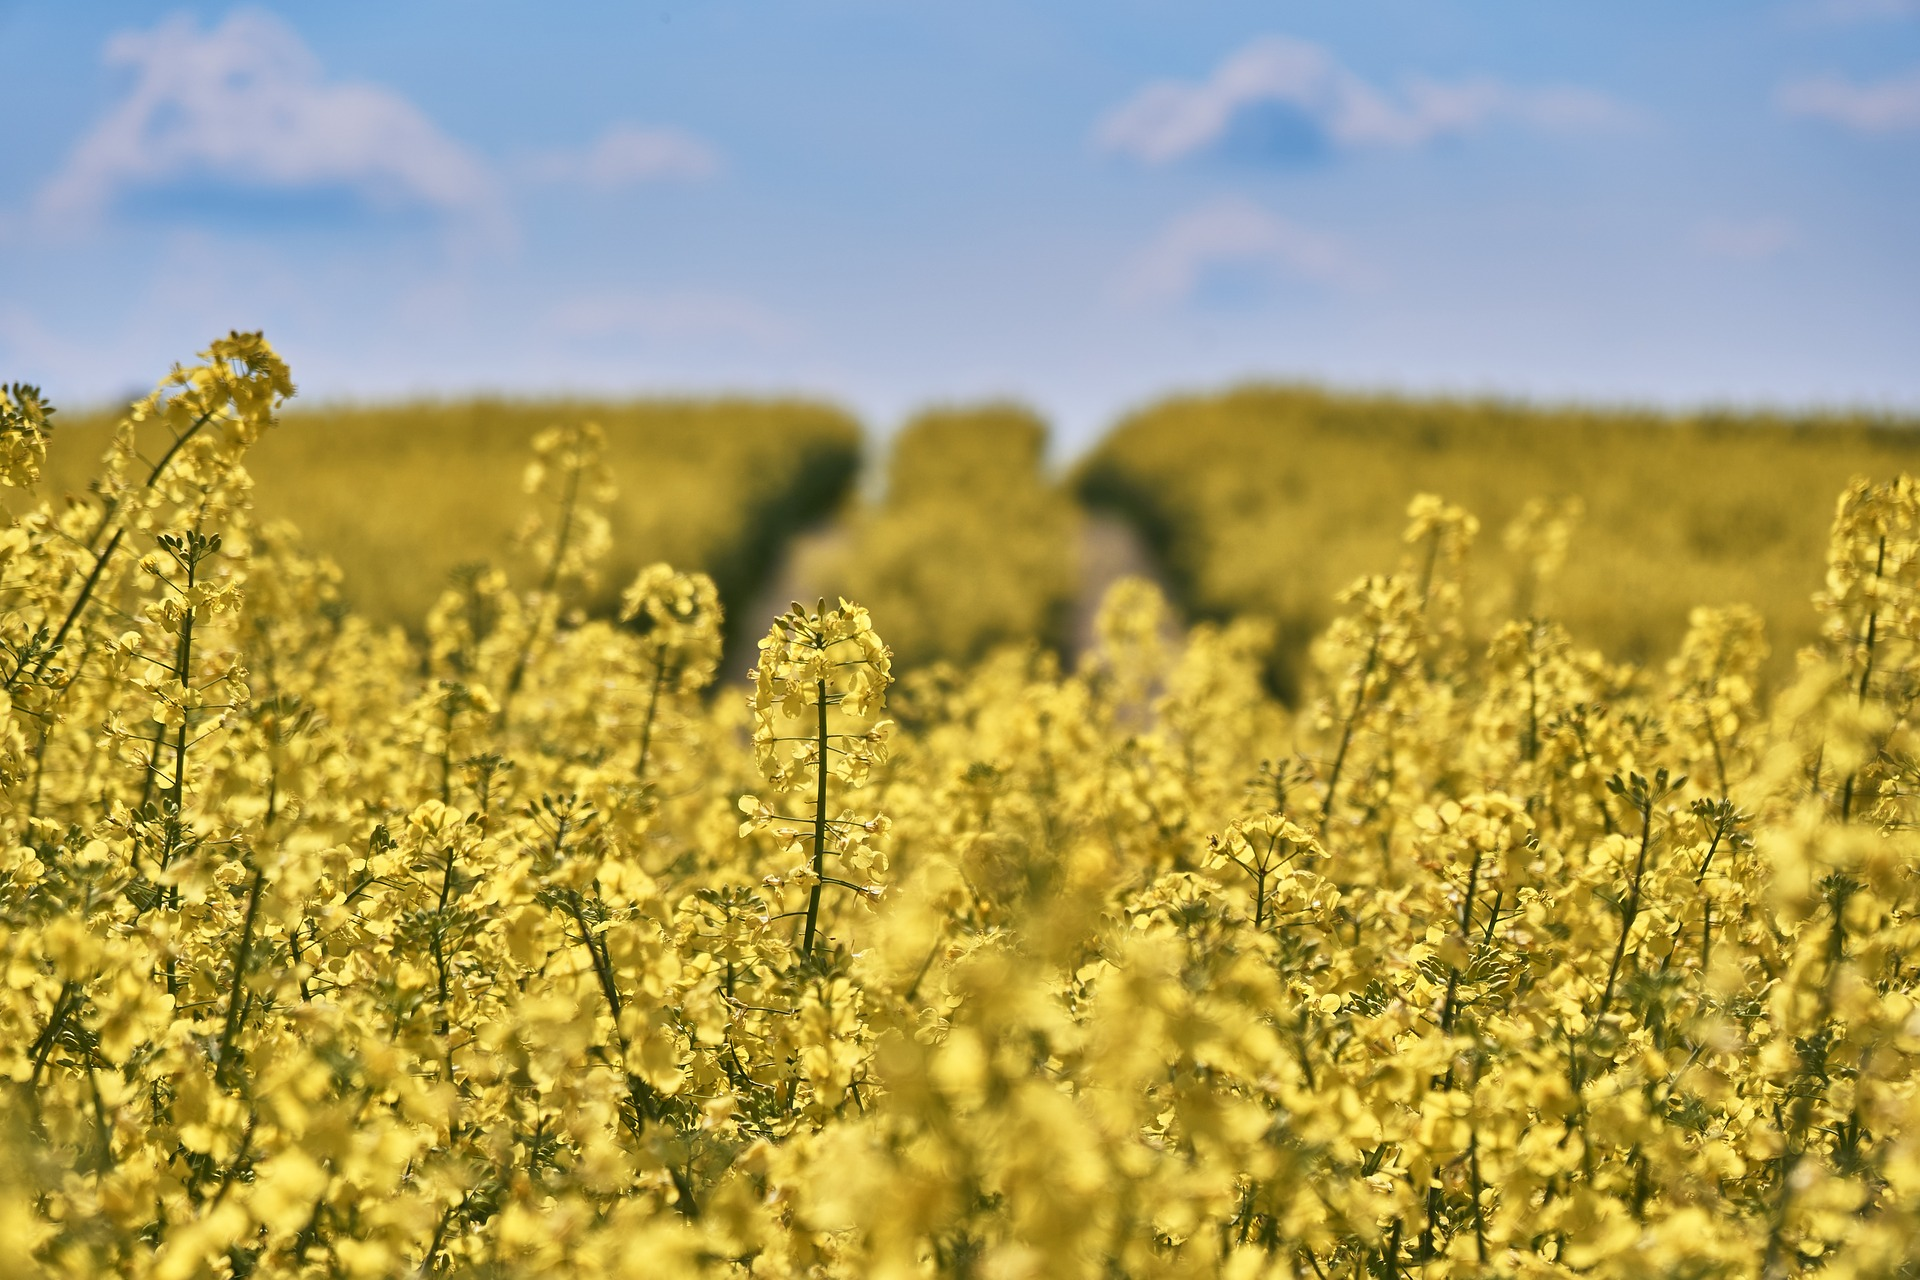 field-of-rapeseeds-1433463_1920